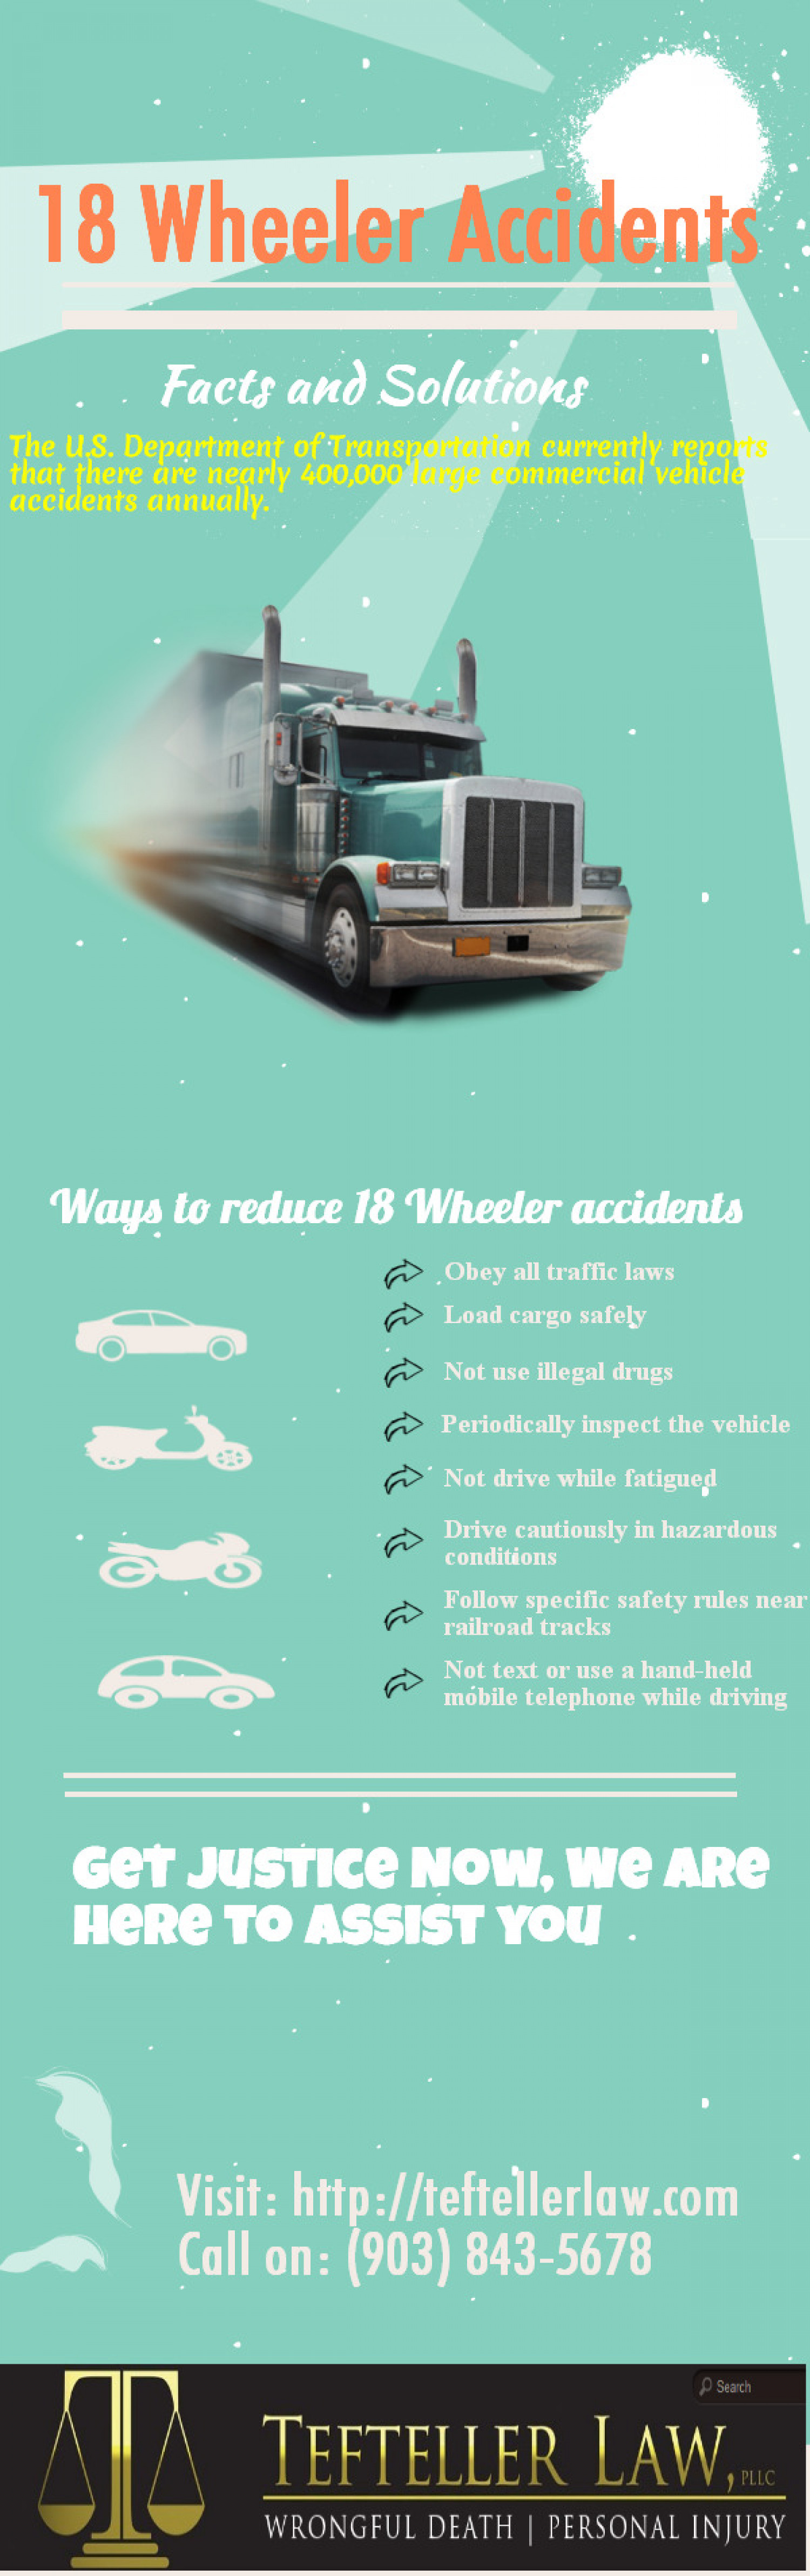 18 Wheeler Accidents Infographic